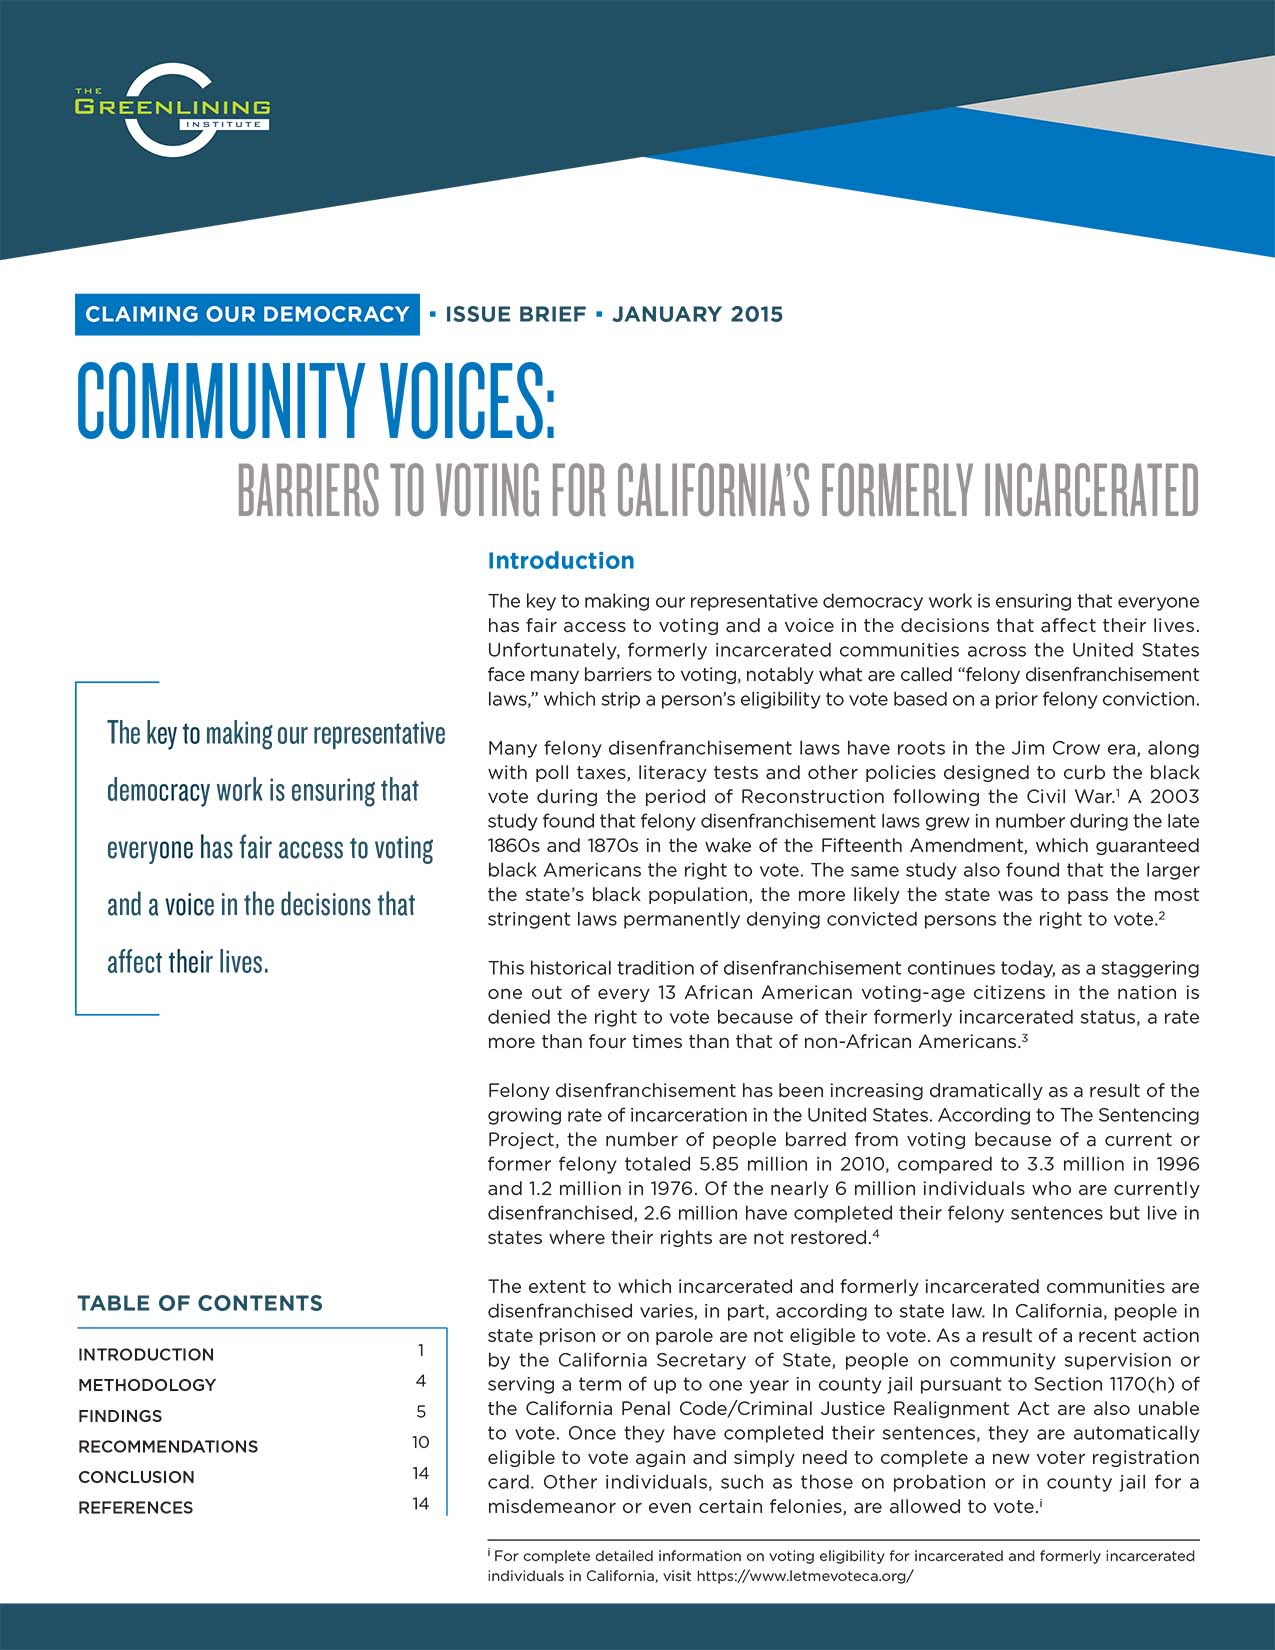 Community Voices: Barriers to Voting for California's Formerly Incarcerated